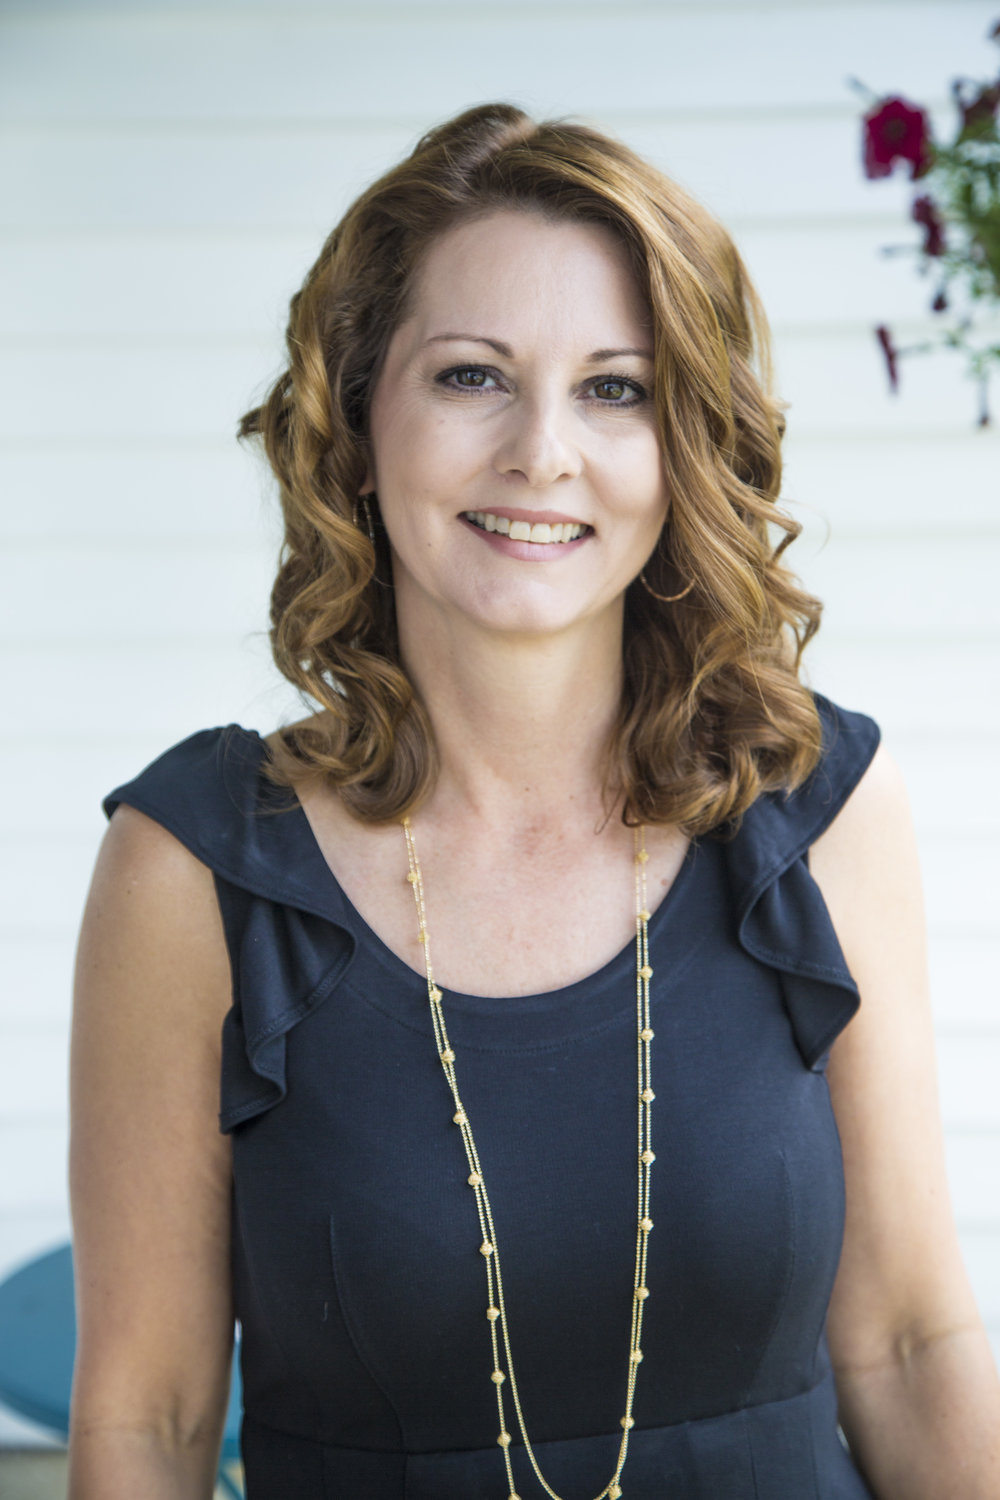 Kim Fox, Owner and Lead Coordinator of Thee Draper Village Wedding & Events Company